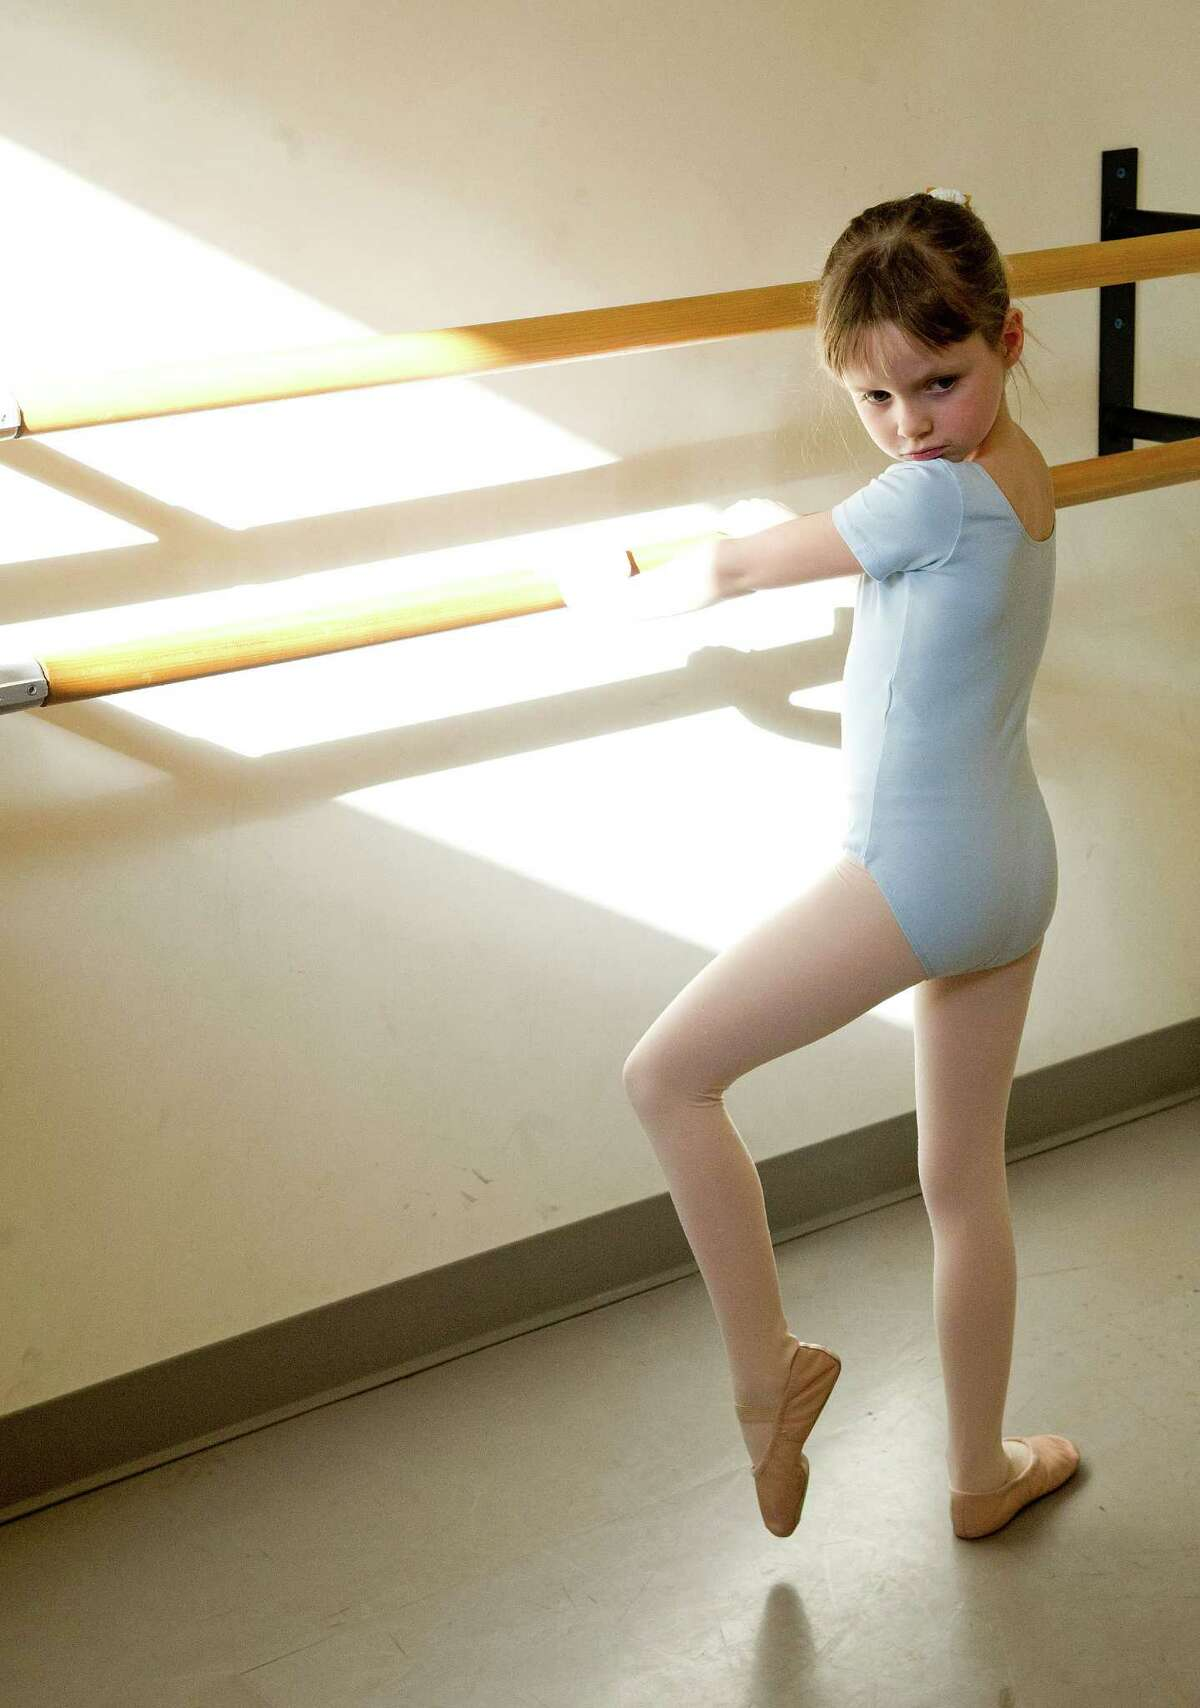 Susannah Lasek practices ballet during a lesson at The Ballet School of Stamford on Thursday, March 14, 2014. The school is a recipient of a grant from the Community Arts Partnership Program.